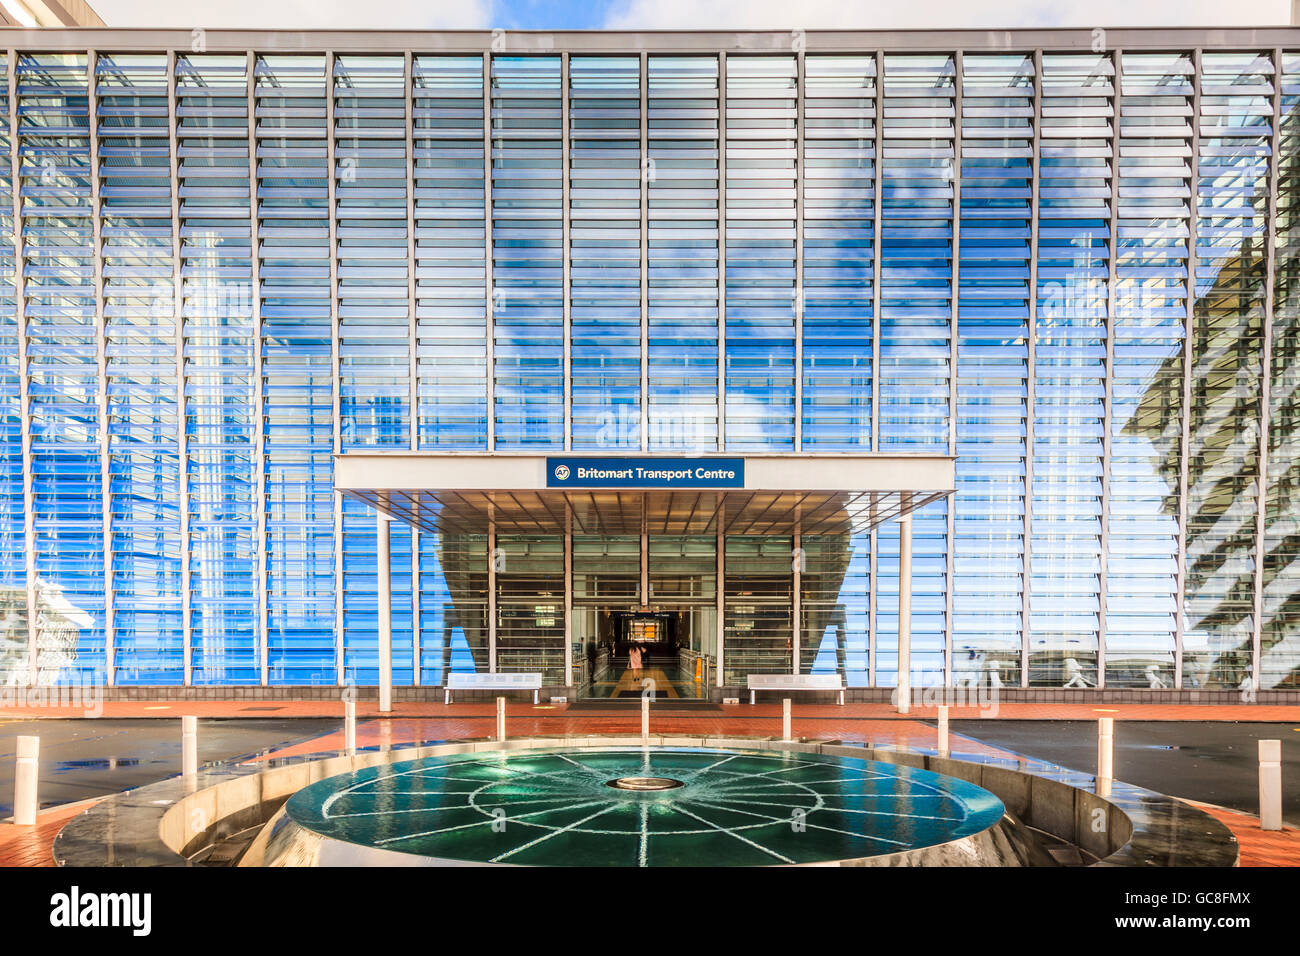 Britomart Transport Centre, glass facade and water feature, Auckland CBD, North Island, New Zealand - Stock Image